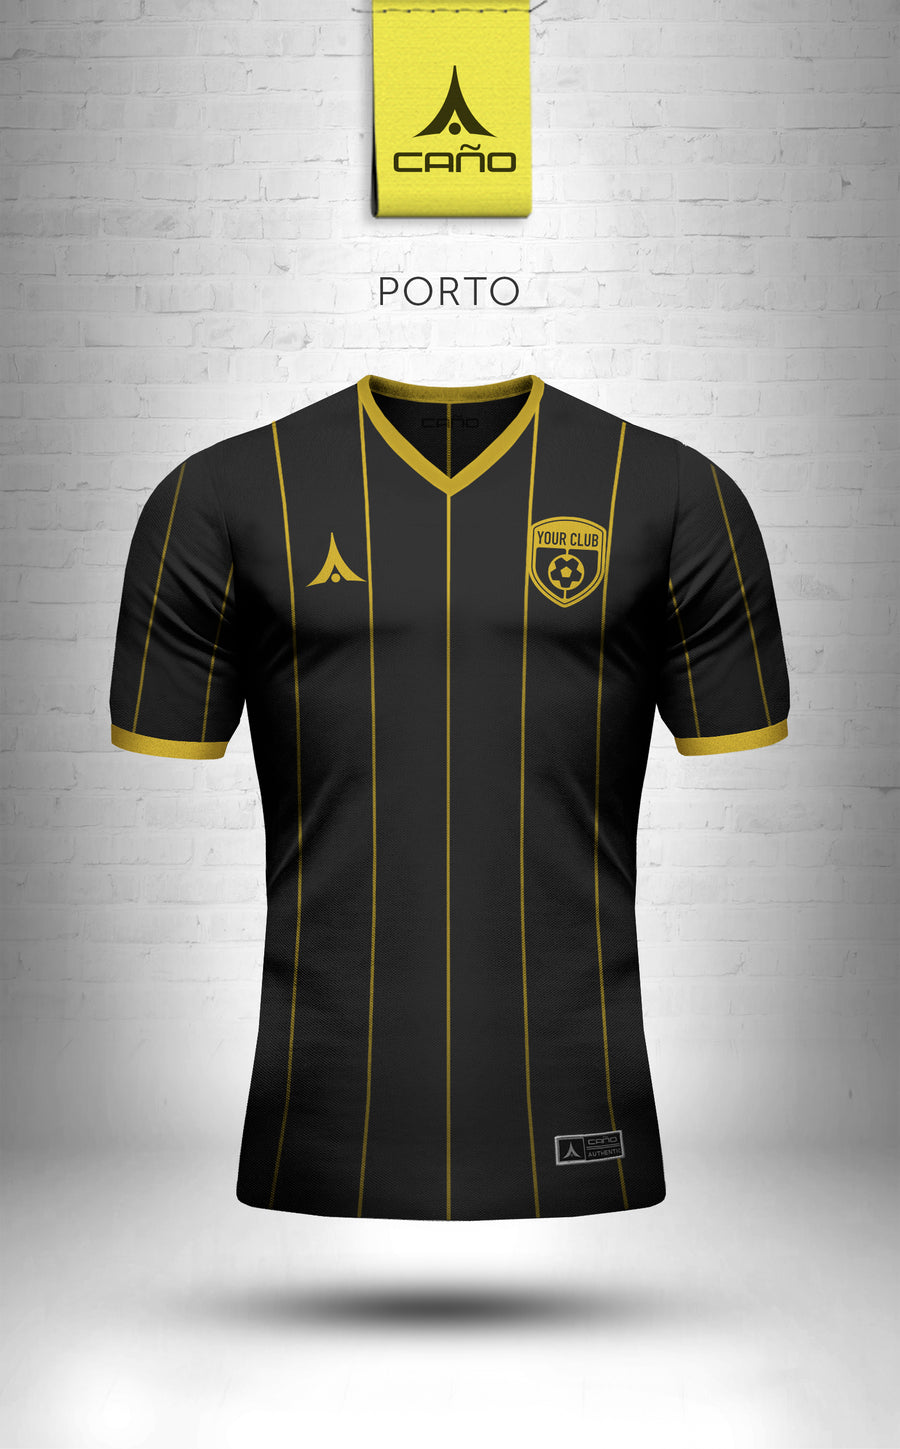 Porto in black/gold